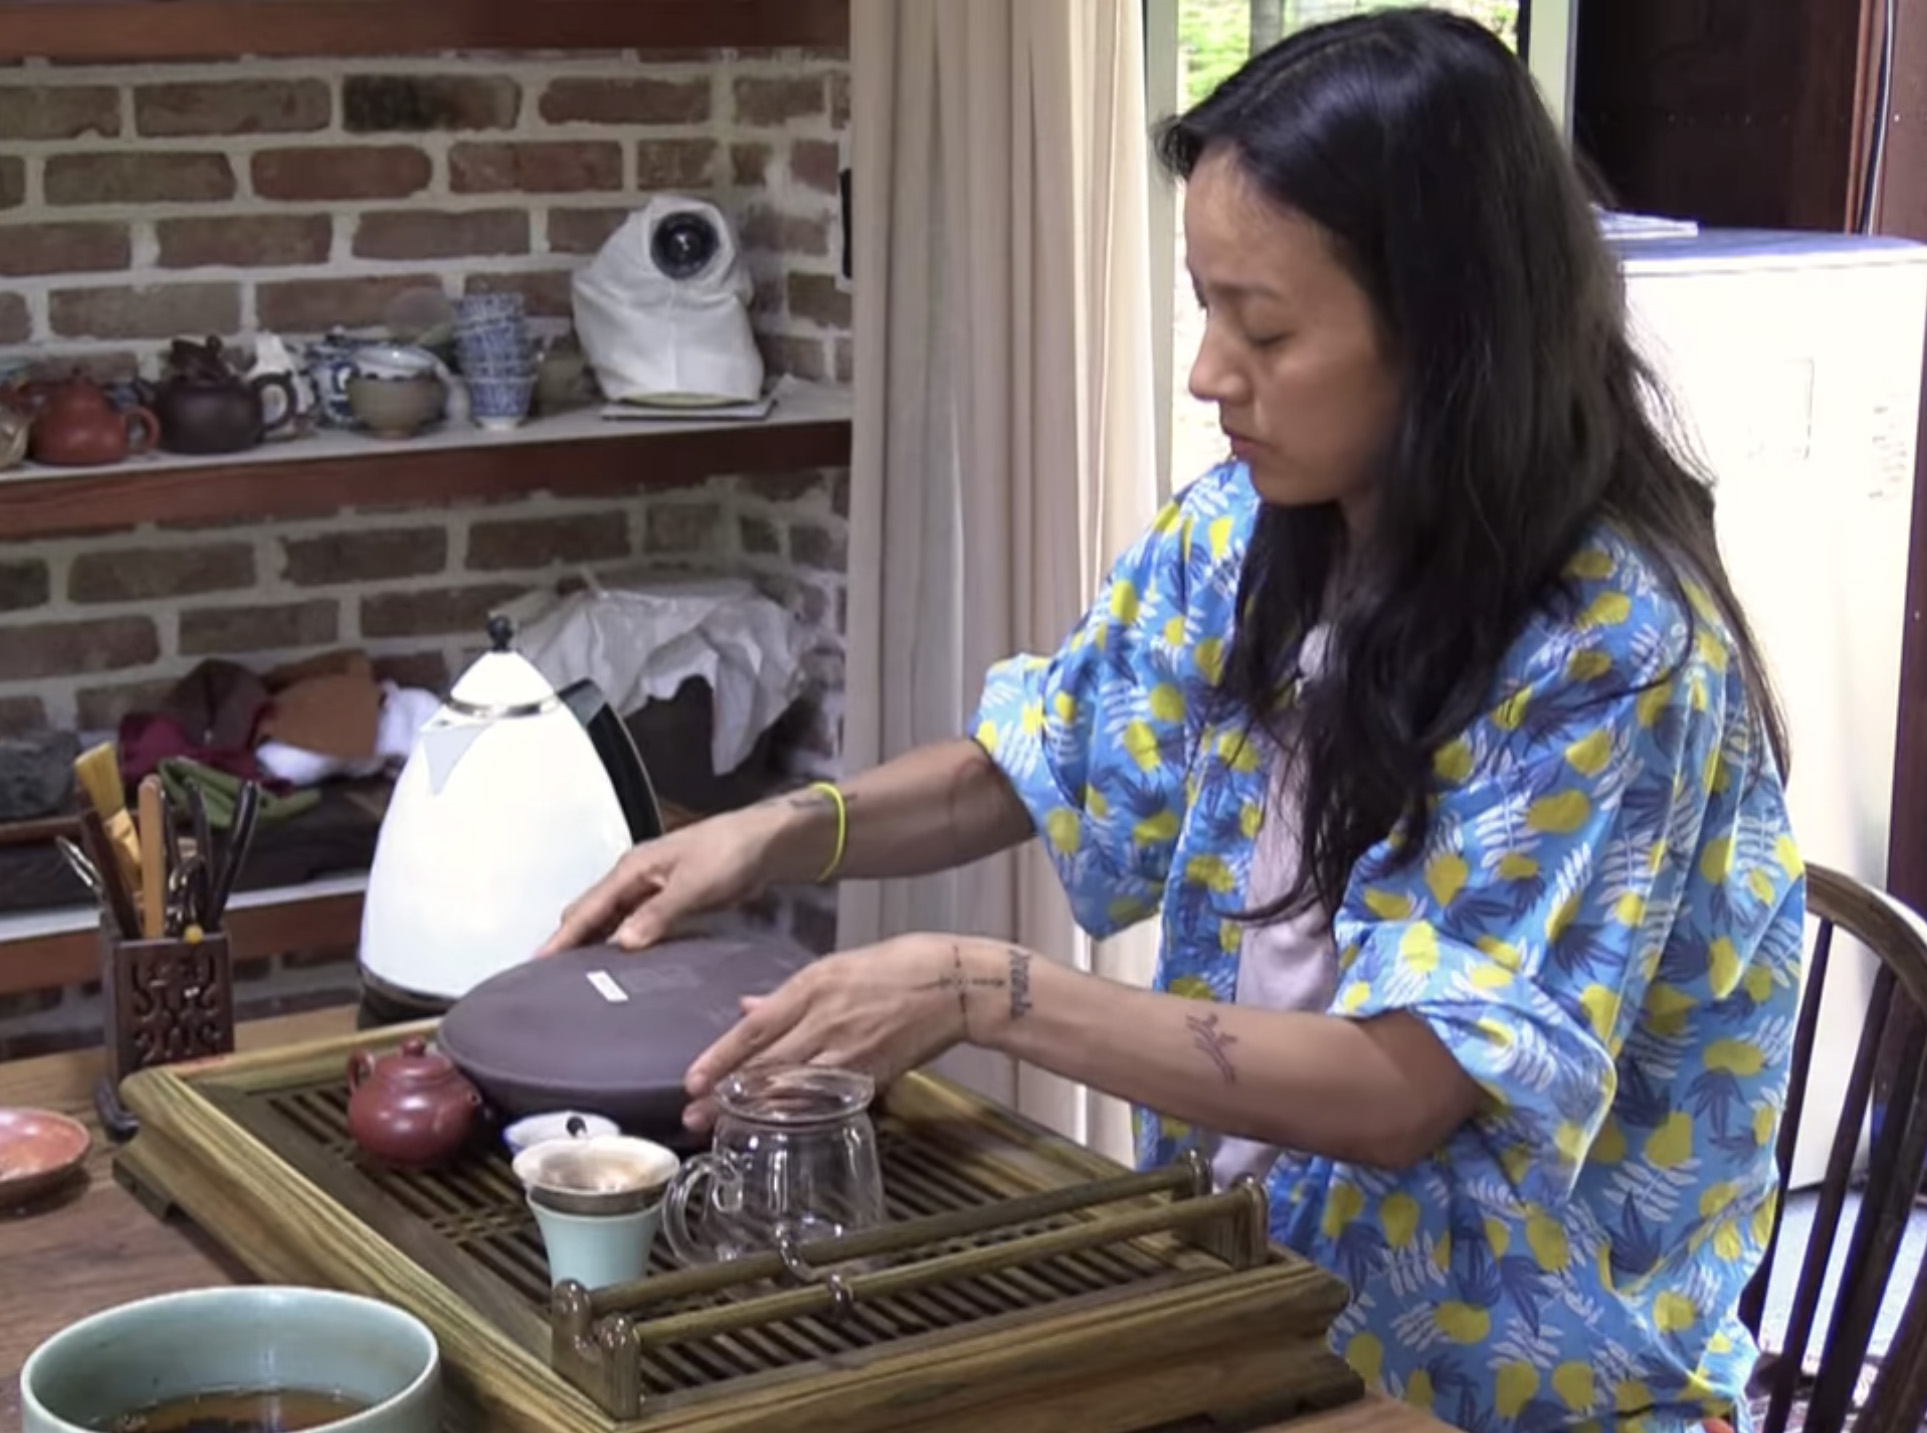 Woman in an oversized shirt sits at a table with a tea set in front of her.